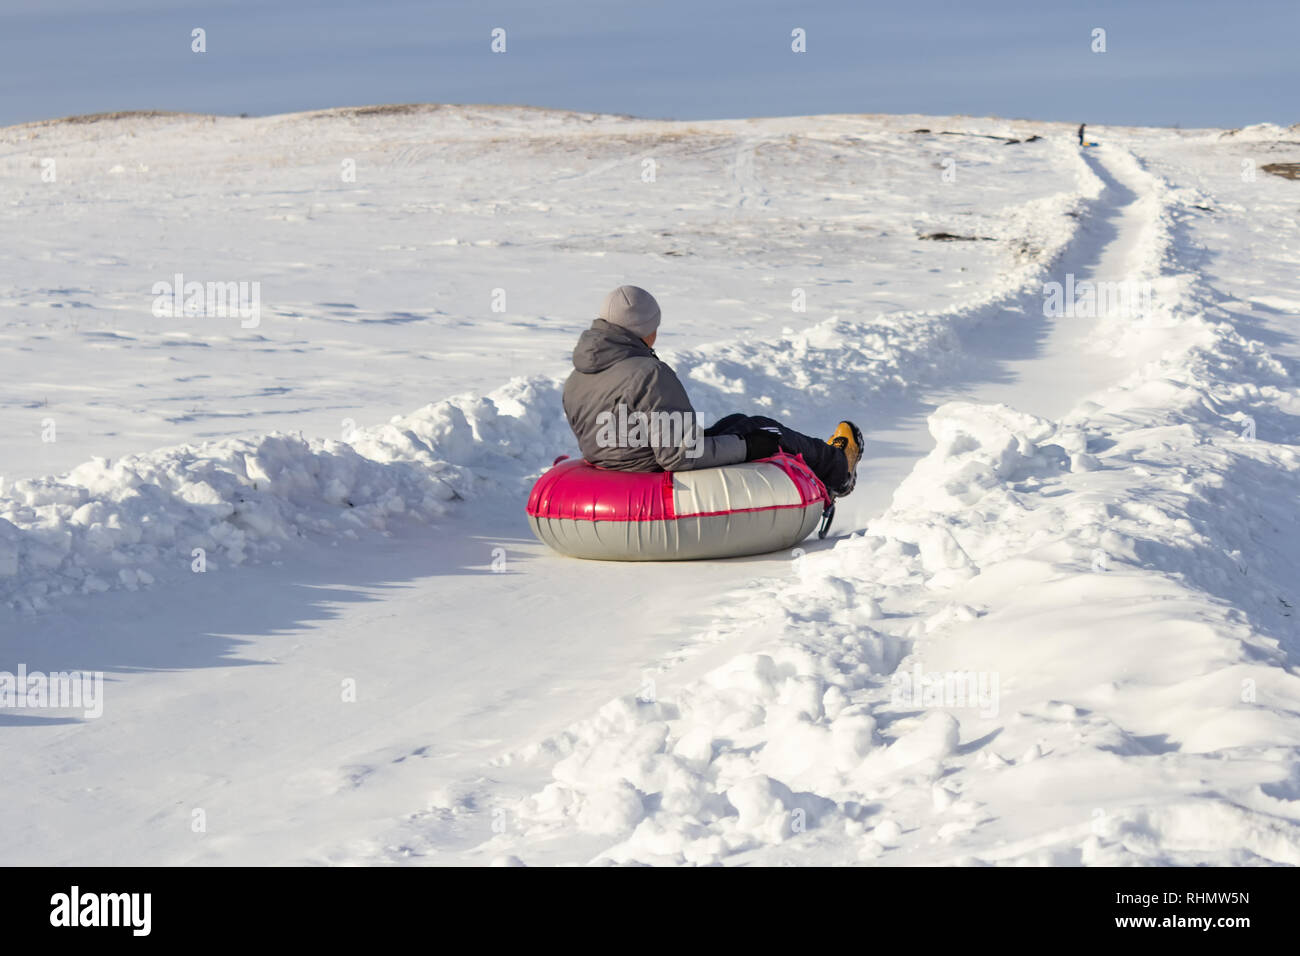 A young man riding a tubing down the hill from the hill, winter sport. - Stock Image